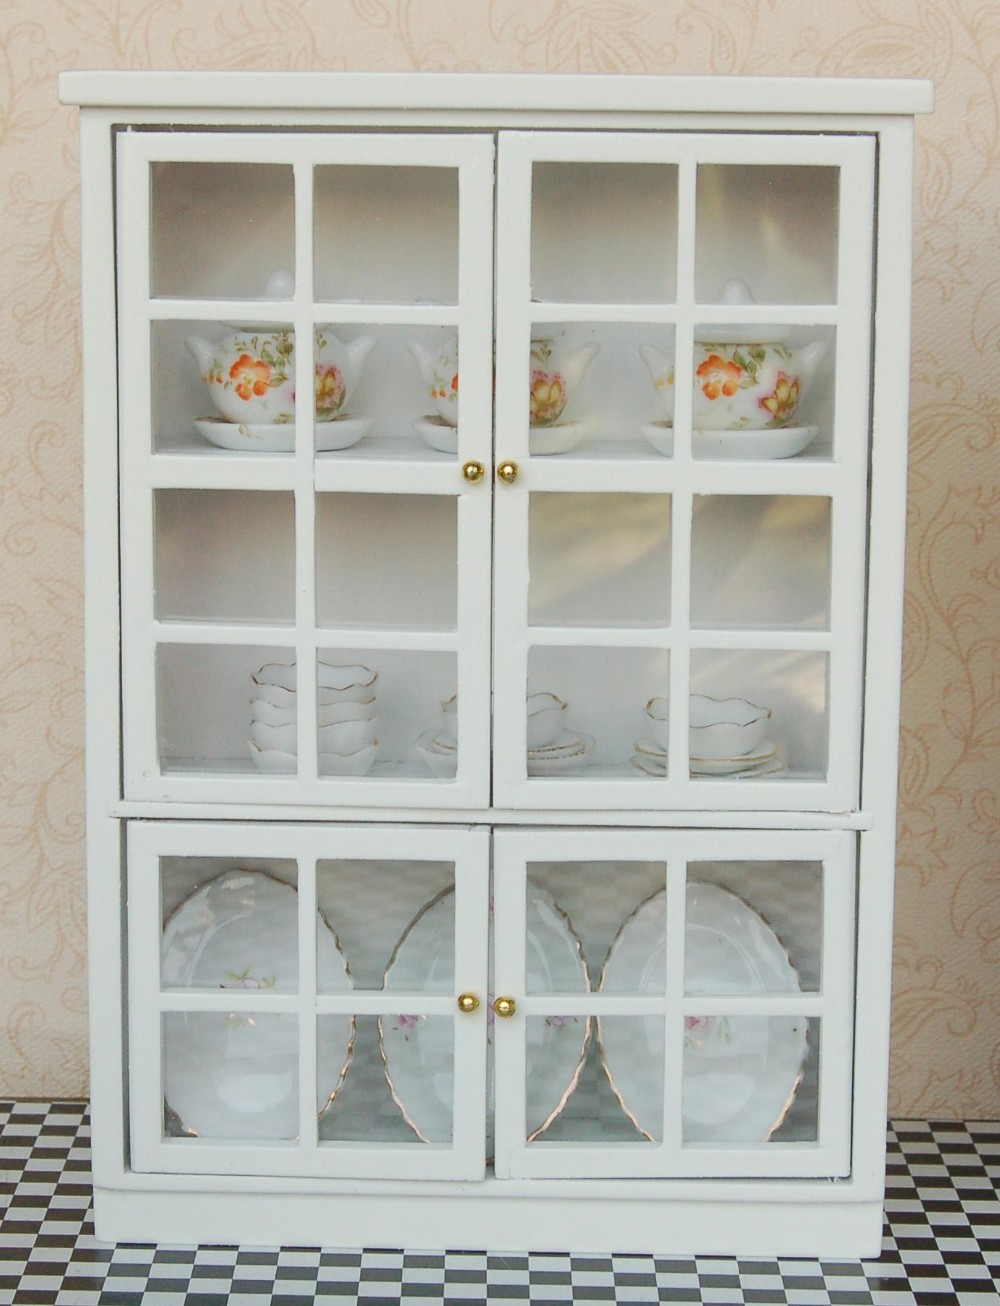 Dolls House White China Curio Display Cabinet Miniature Dining Room Furniture